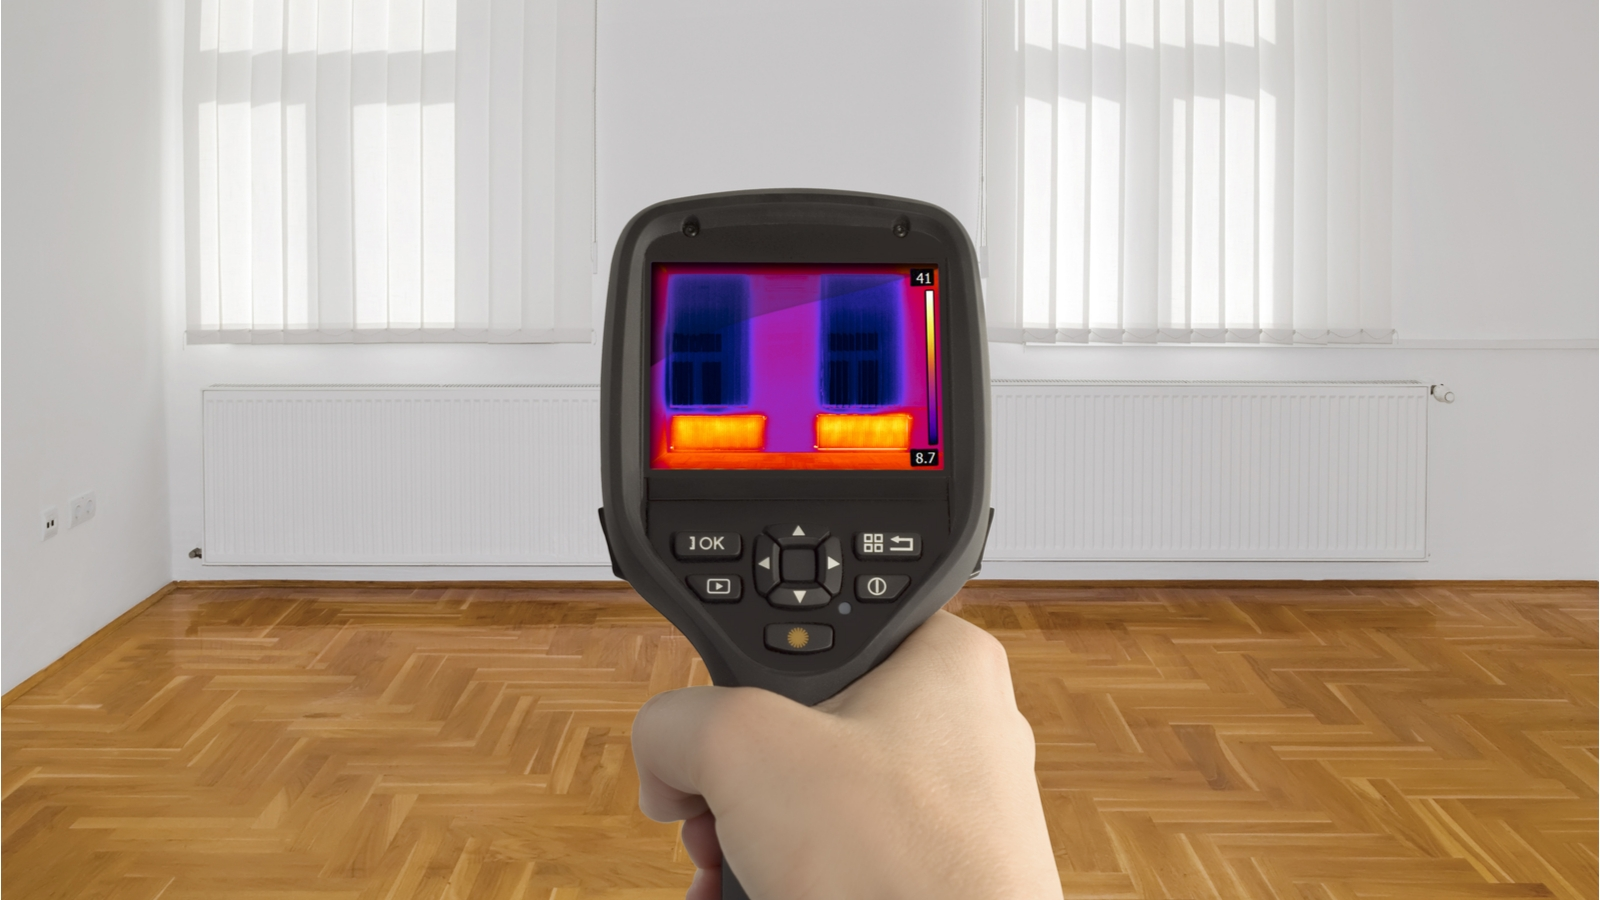 Thermal Imager Pointing At Windows In Room